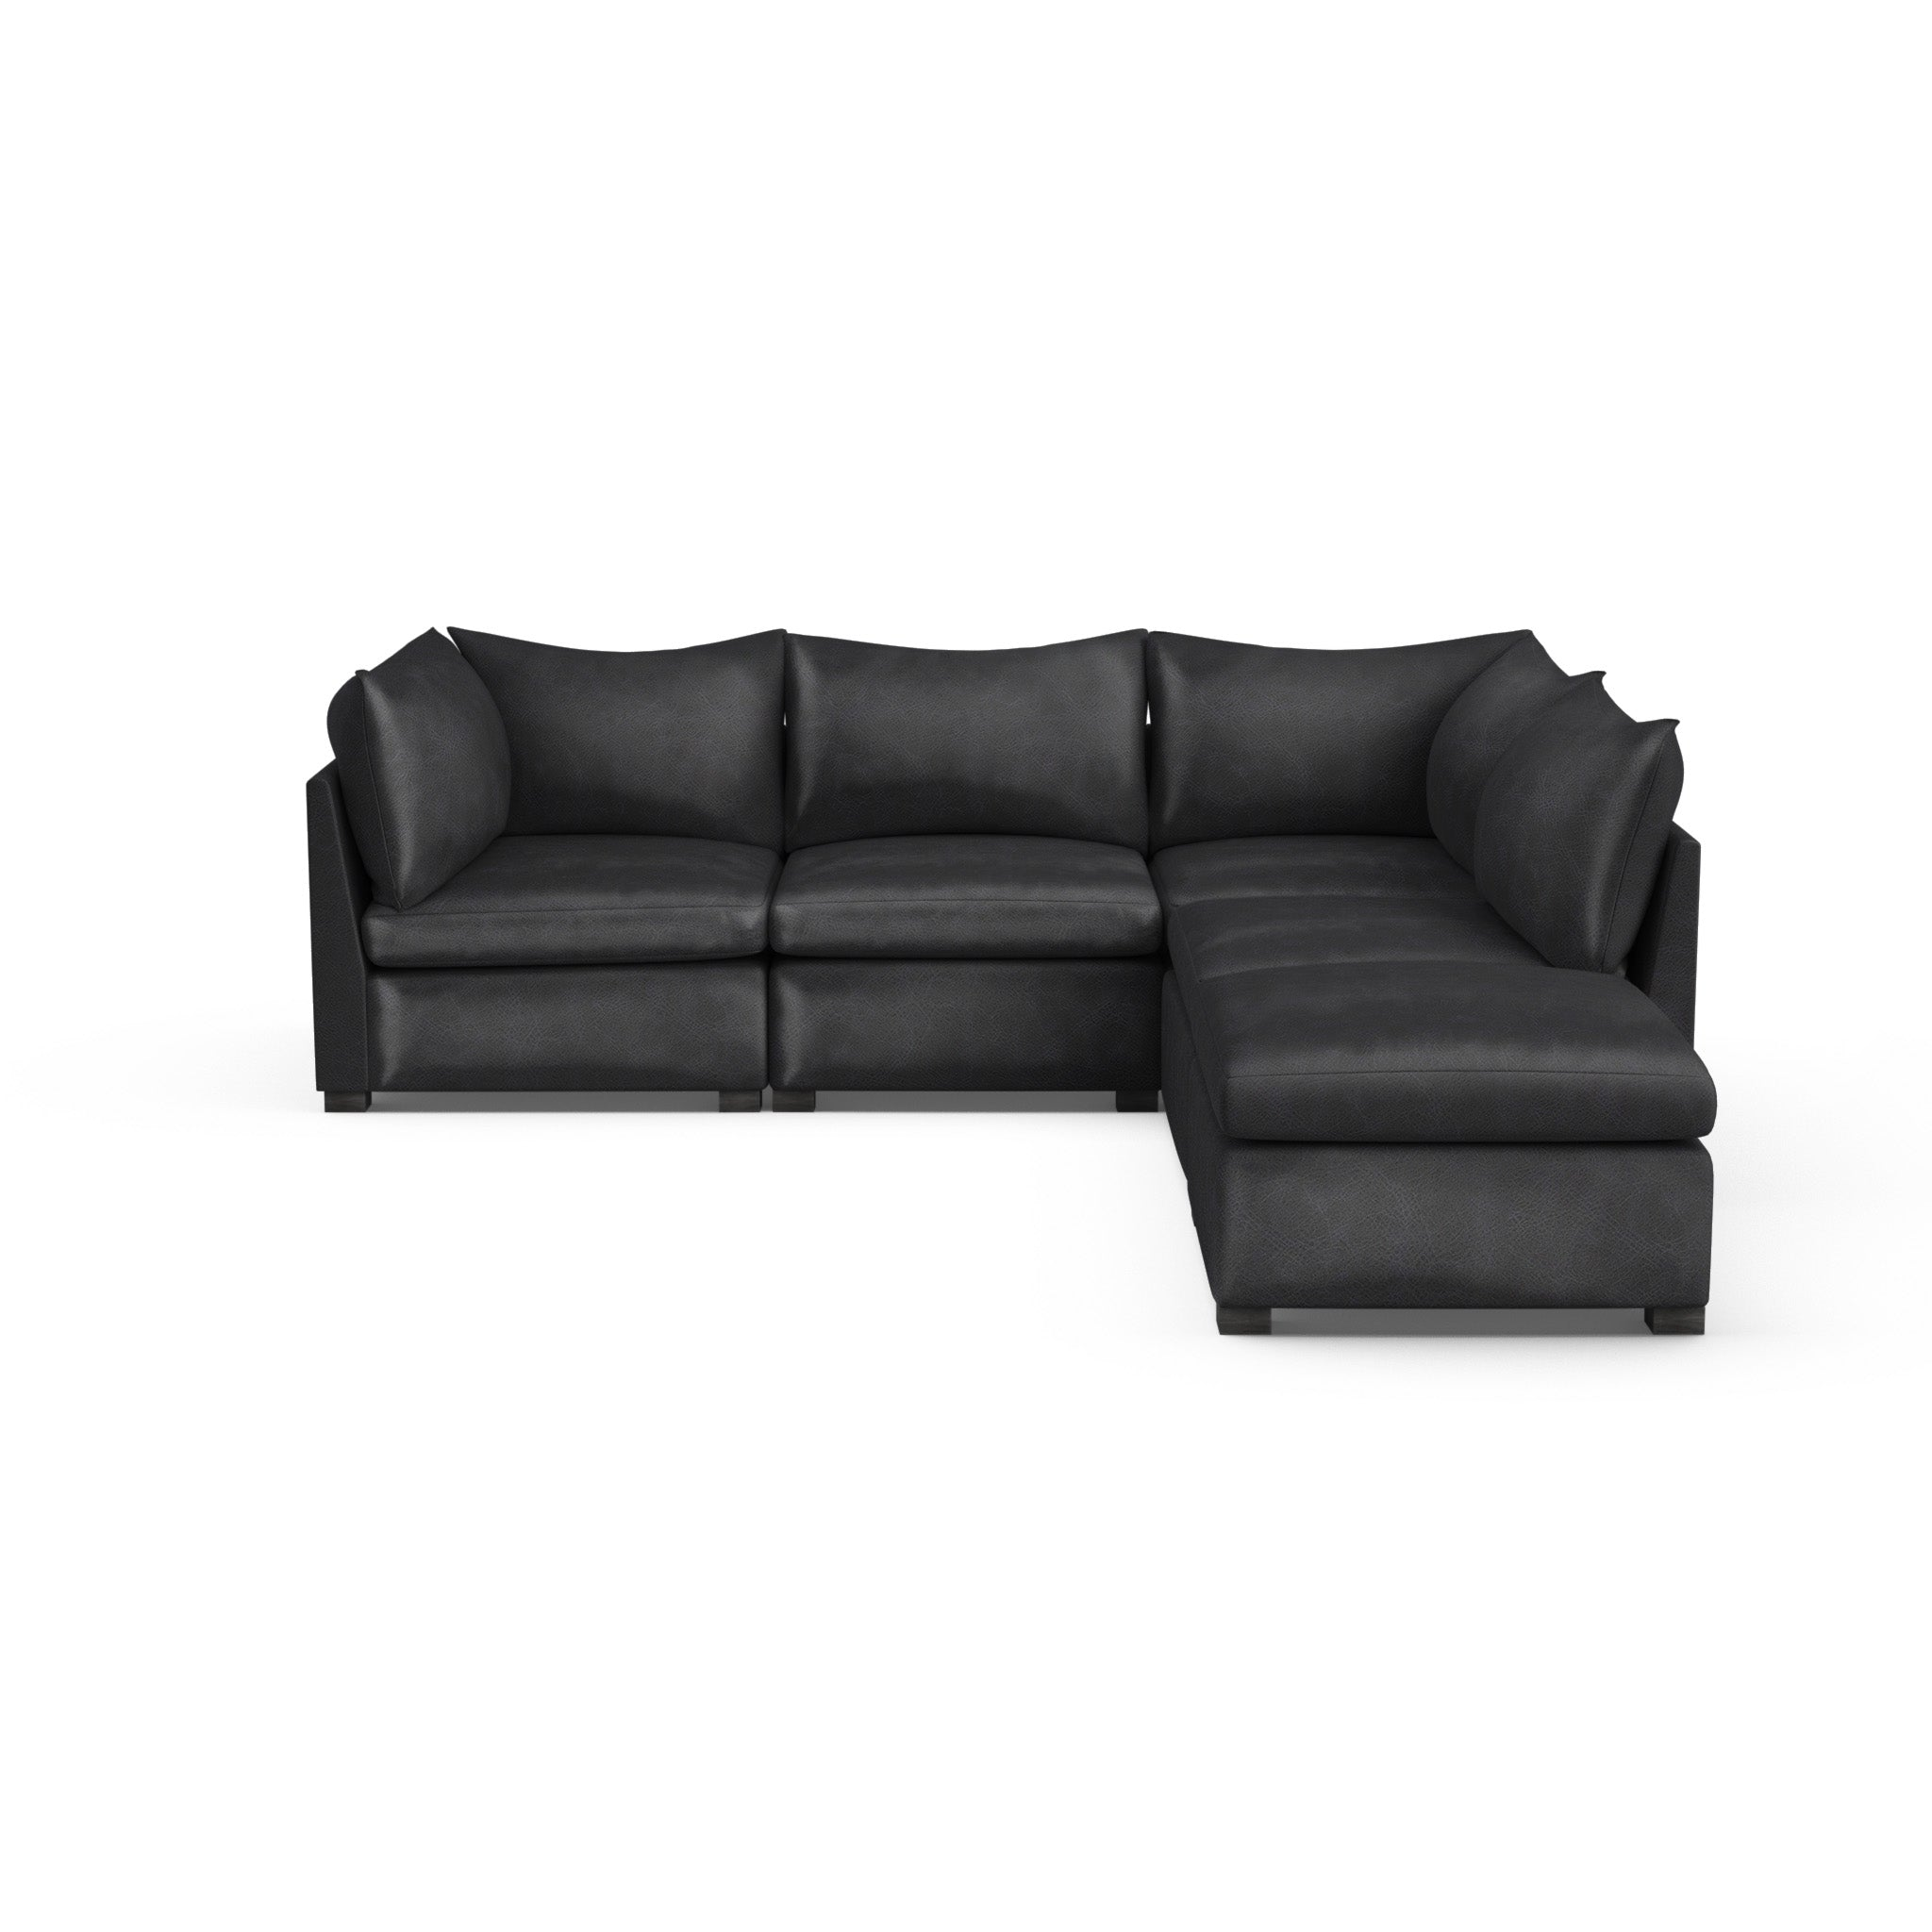 Evans 5-Piece Corner Sectional - Black Jack Vintage Leather